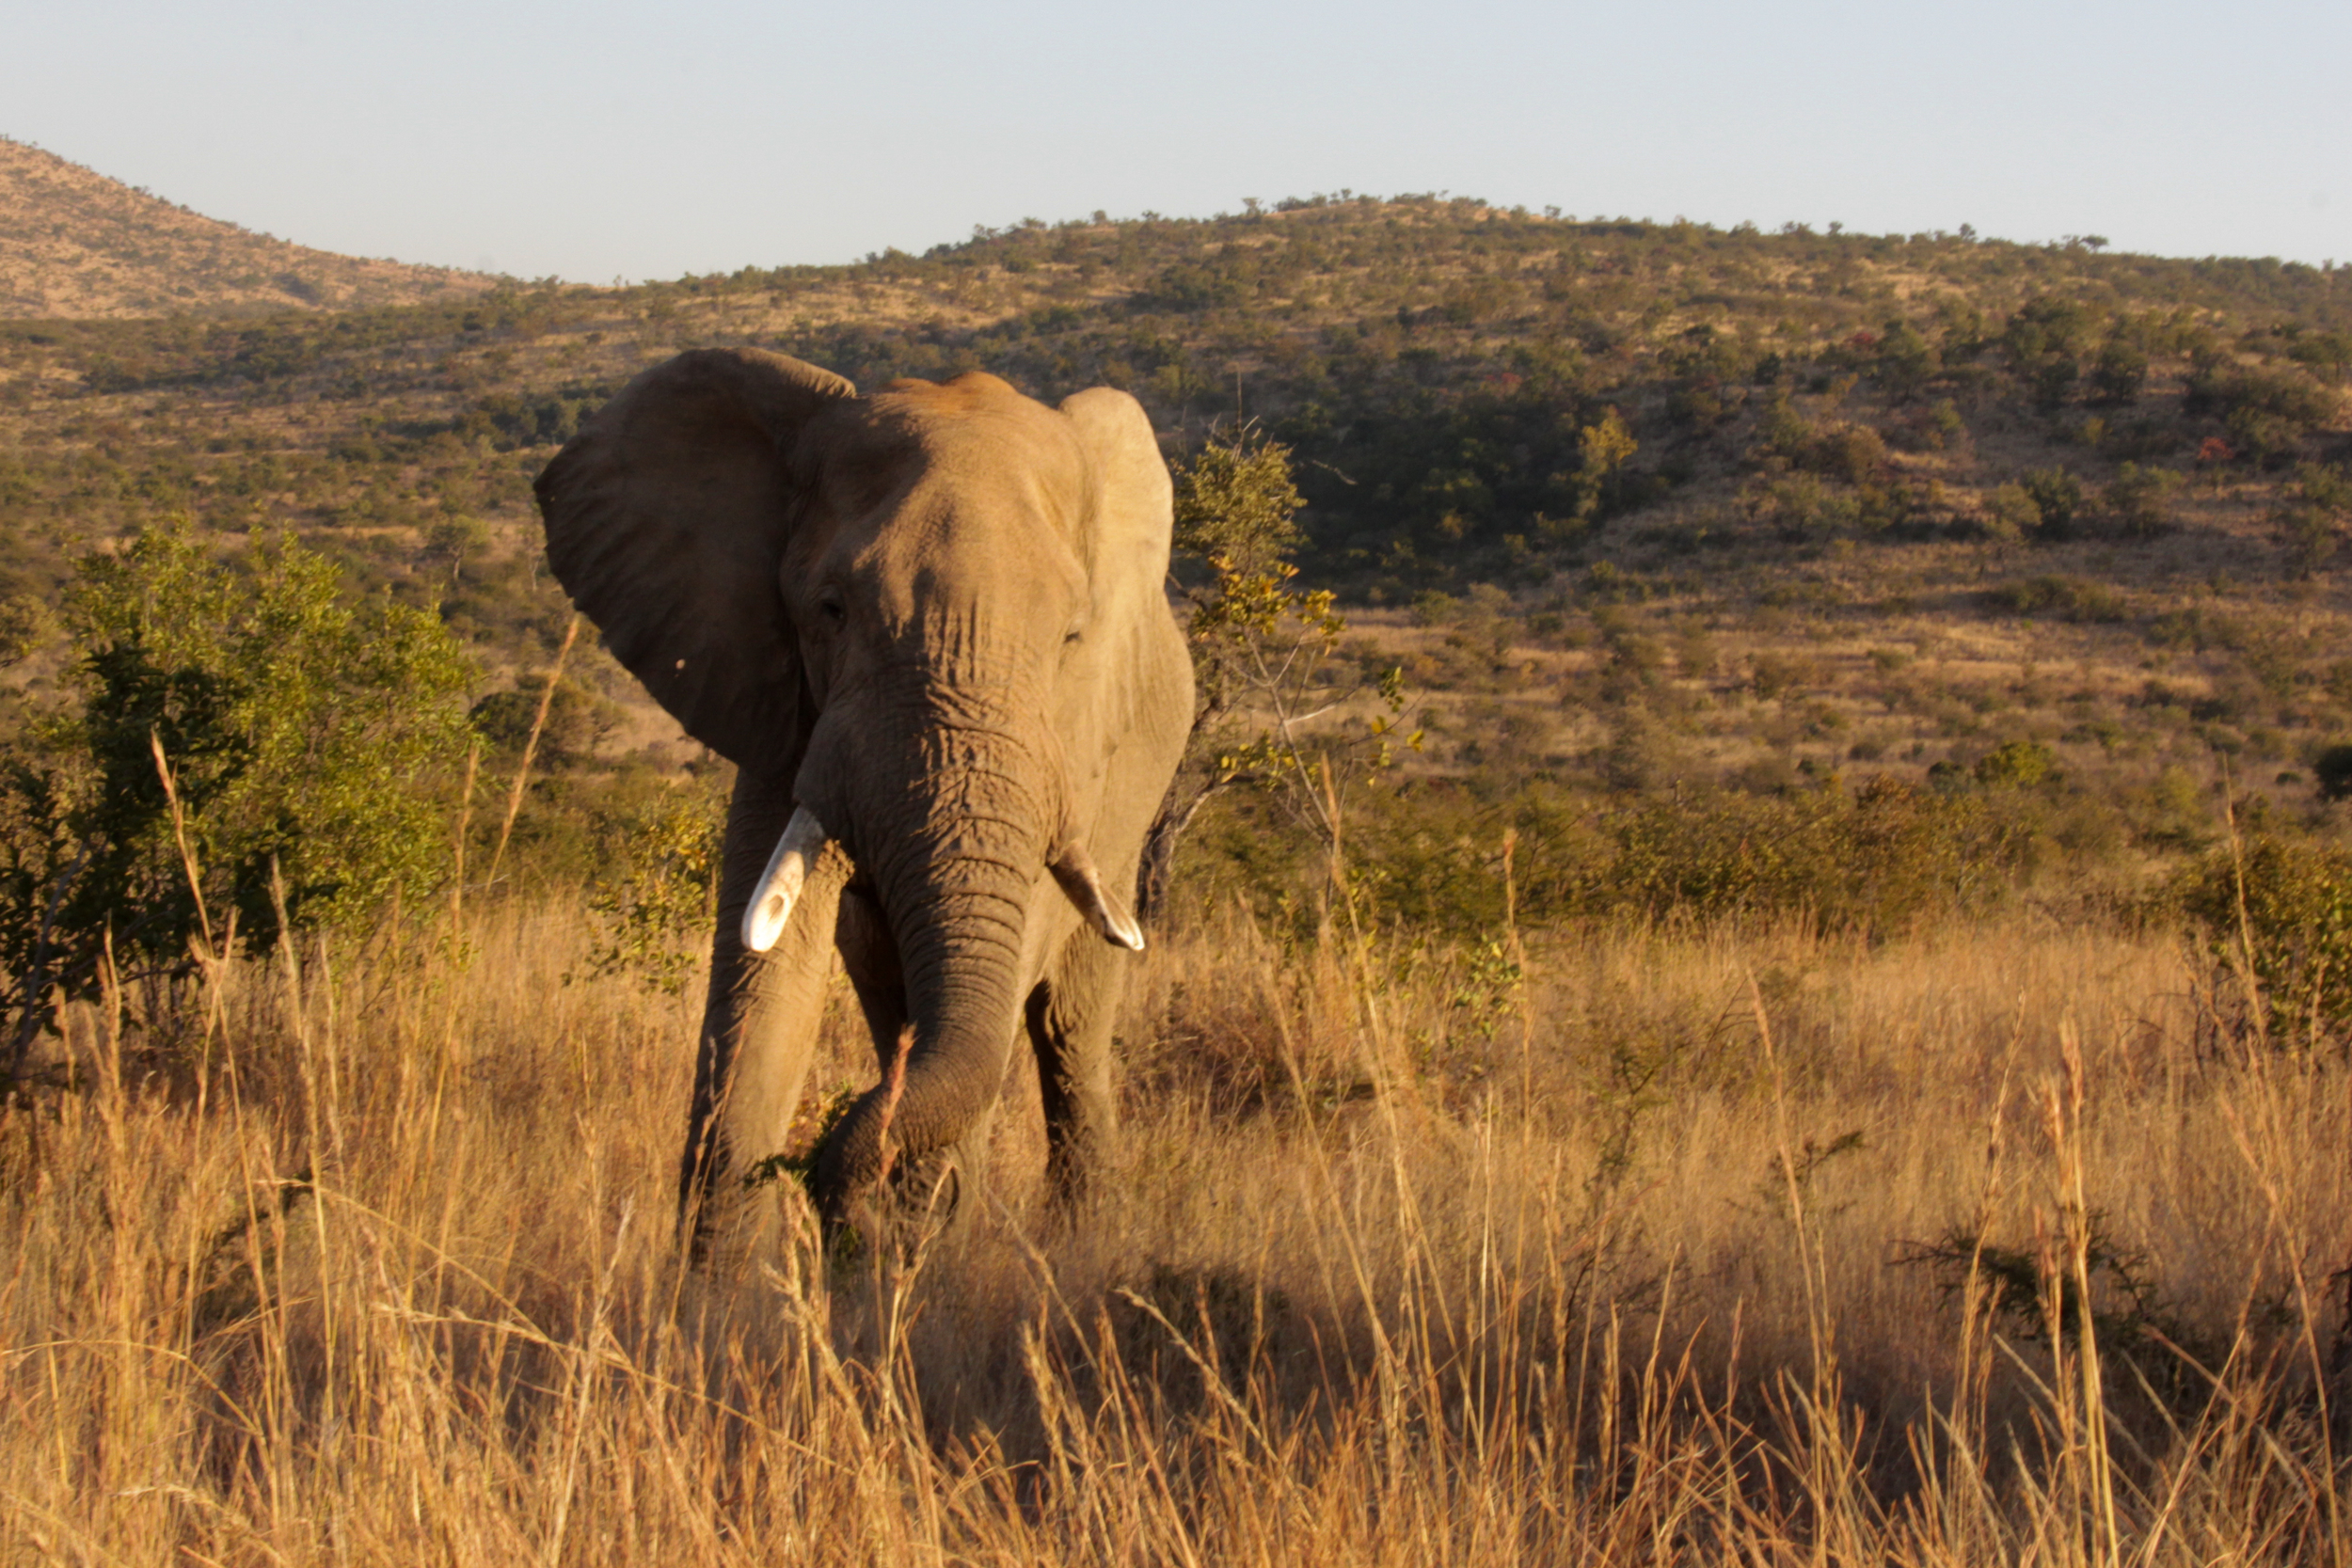 Large bull elephant, I was told he lost his tusks in a fight